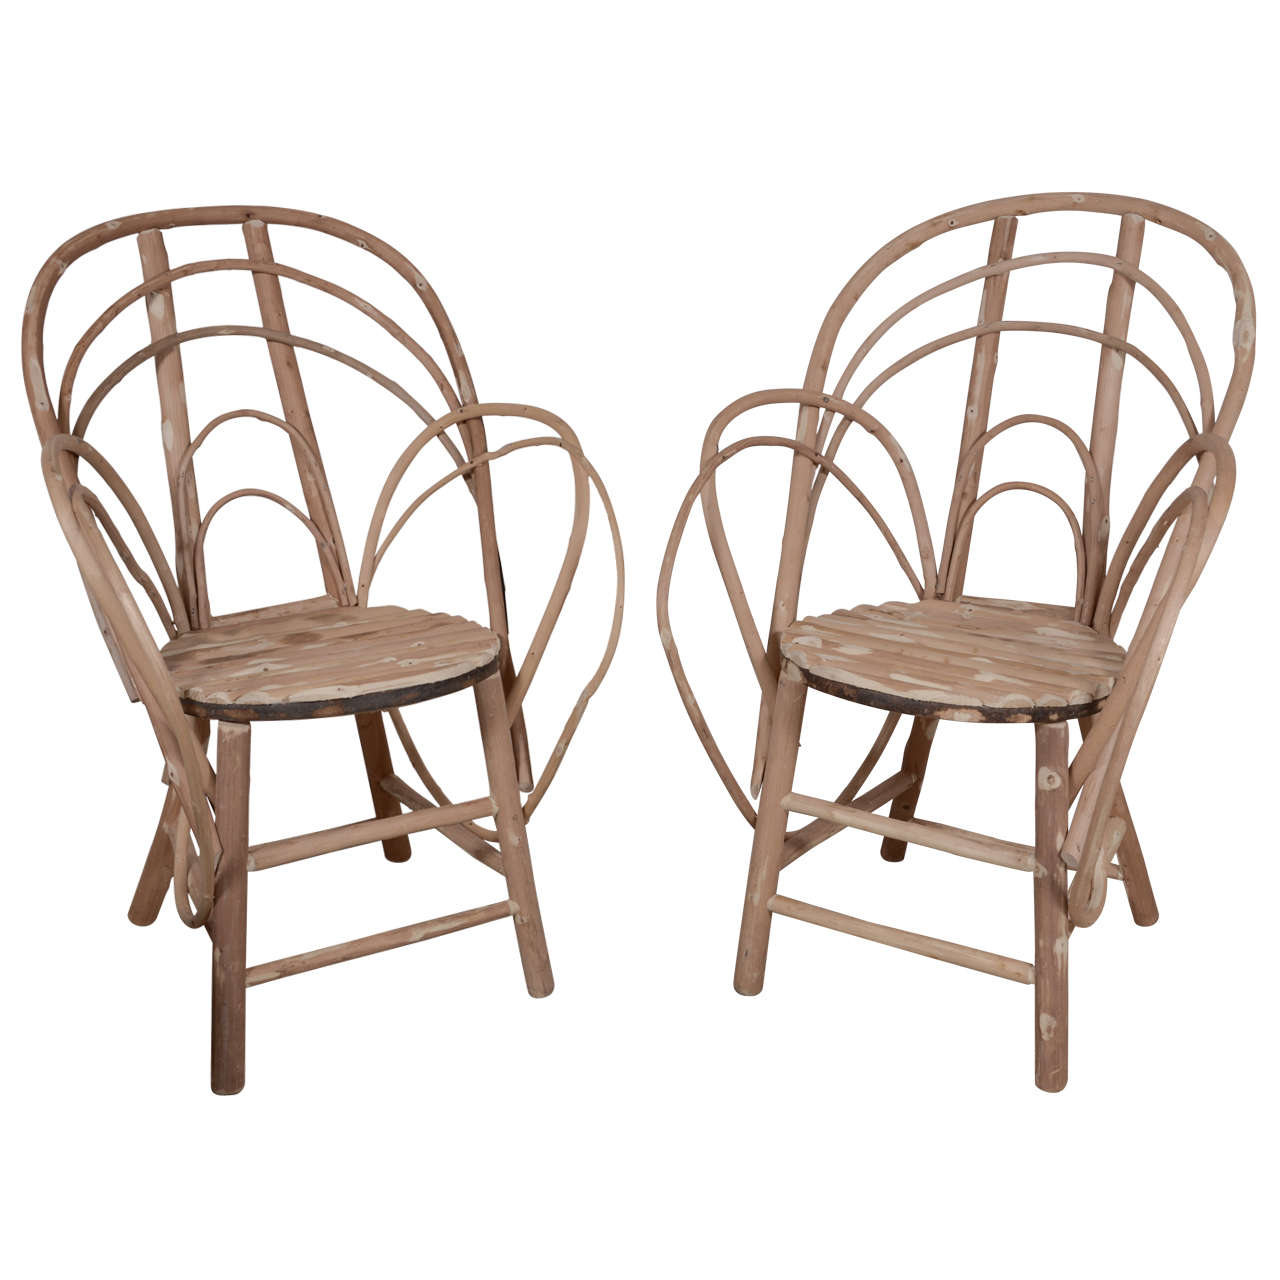 Twig Dining Chairs For Sale